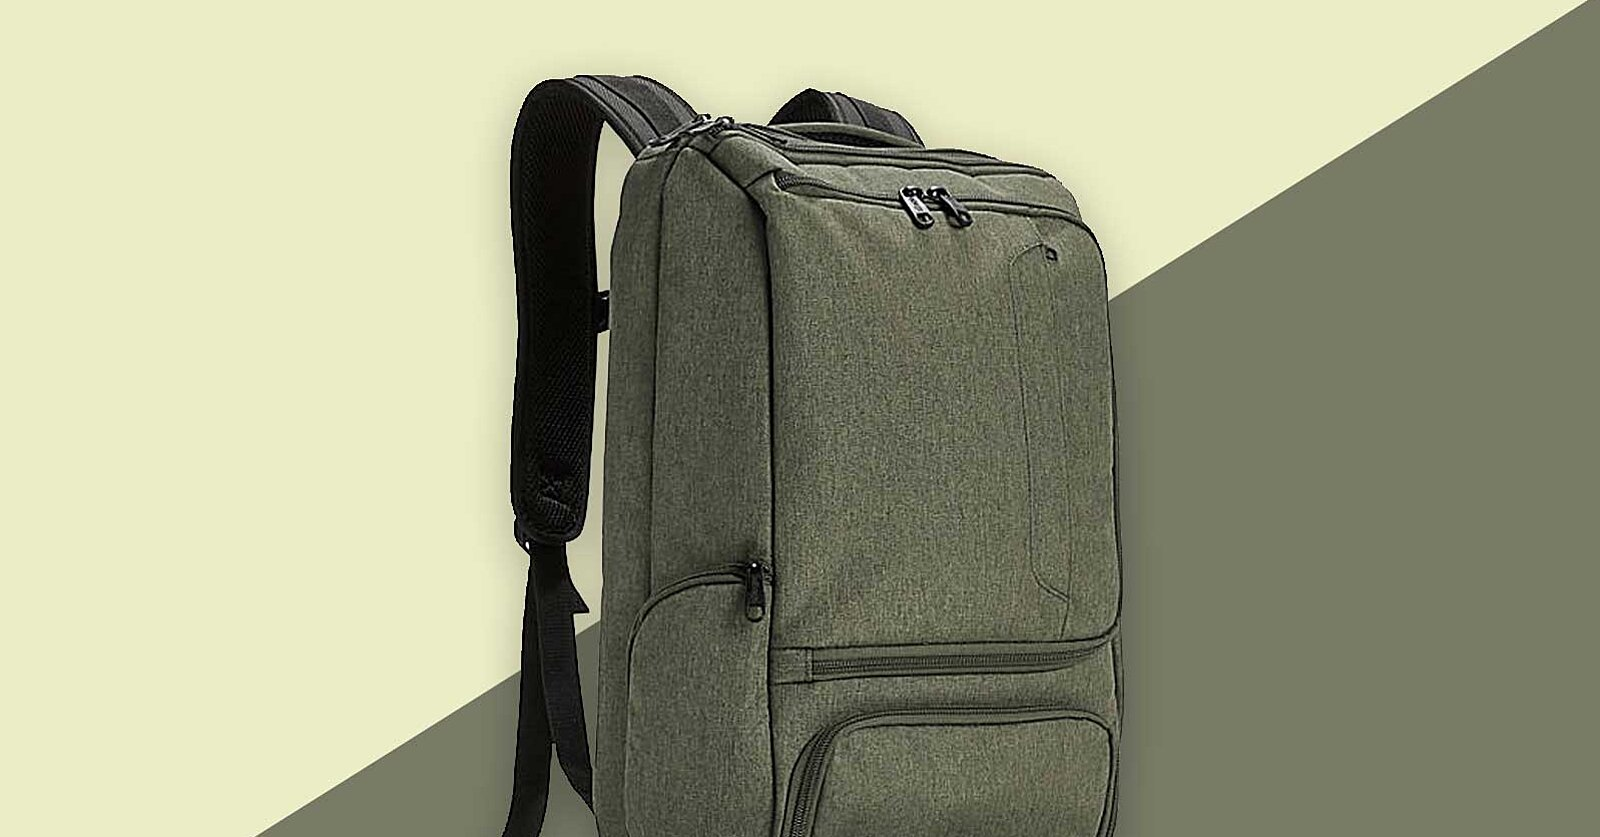 Cyber Monday Deal: eBags Backpack 50% Off Right Now